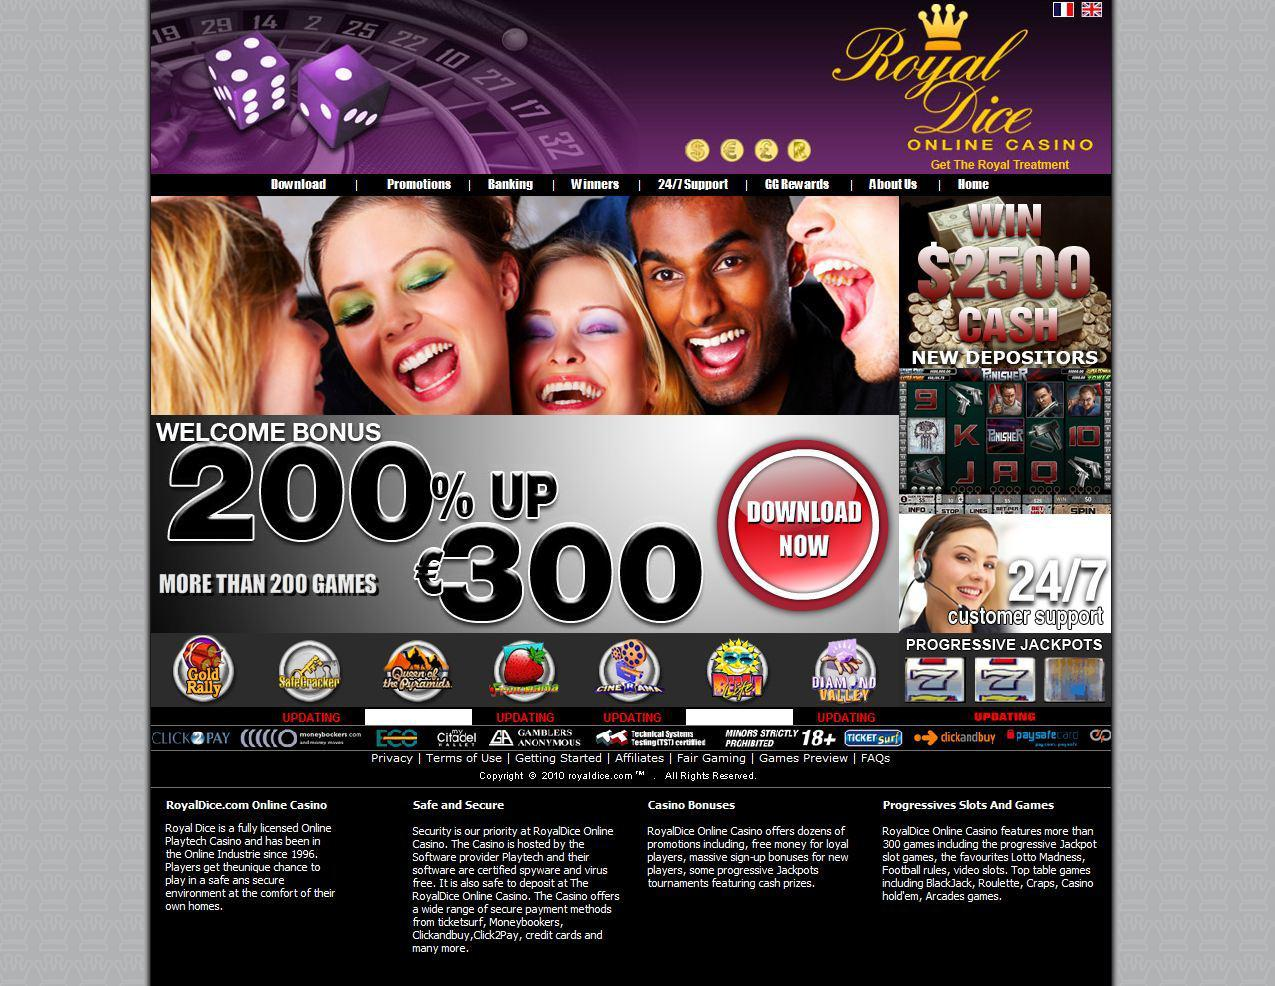 Royal dice casino review nevada casino for sale